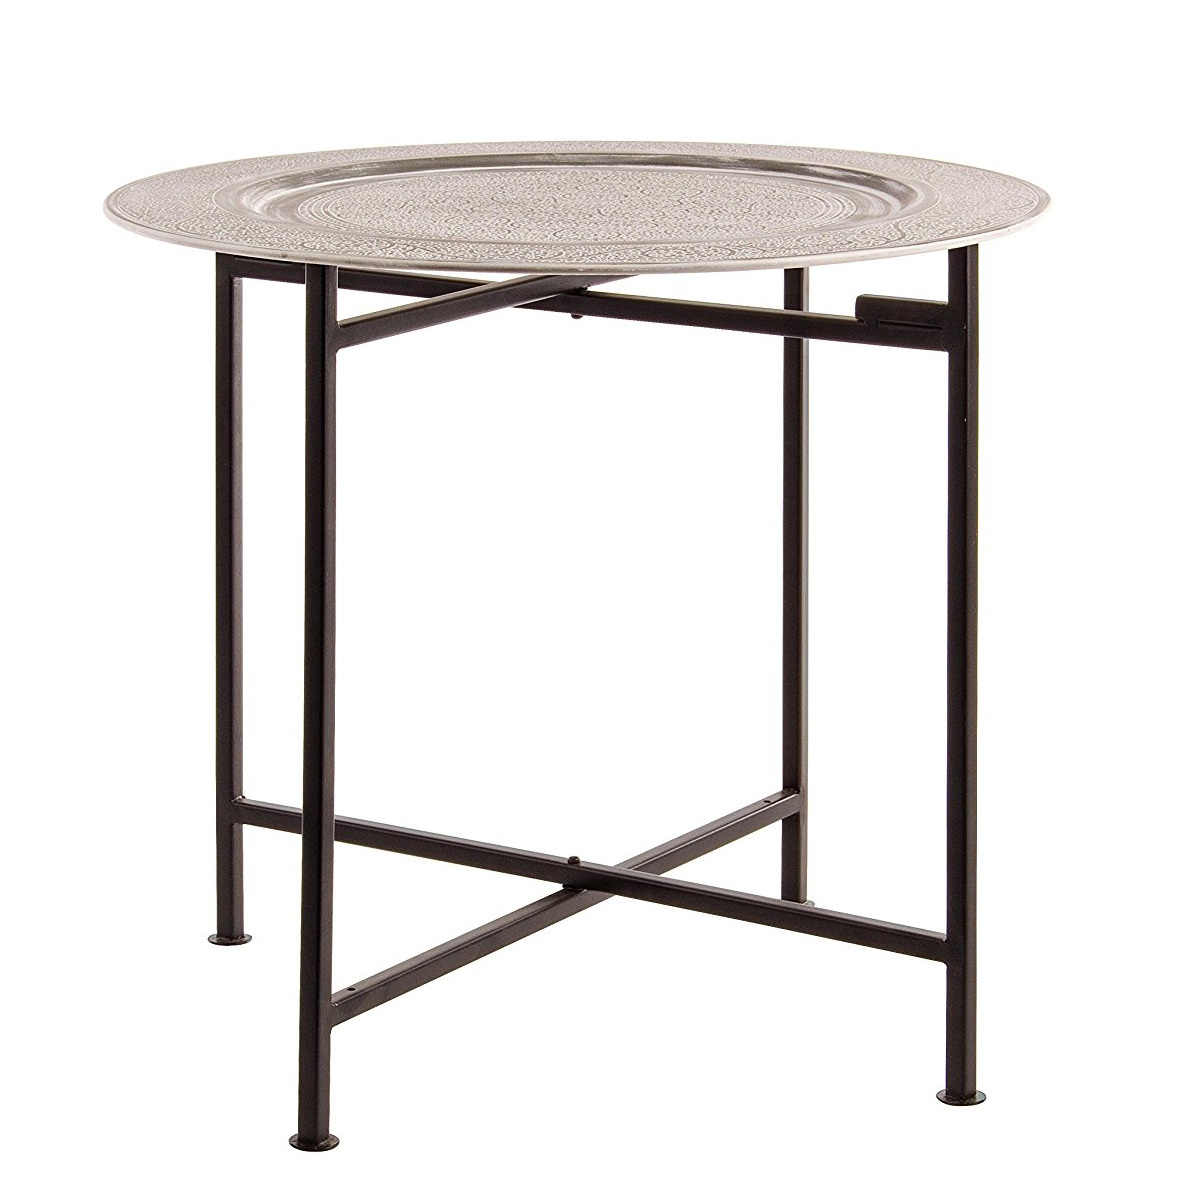 Photos 1: Bizzotto Round table in metal d. 50 0746051